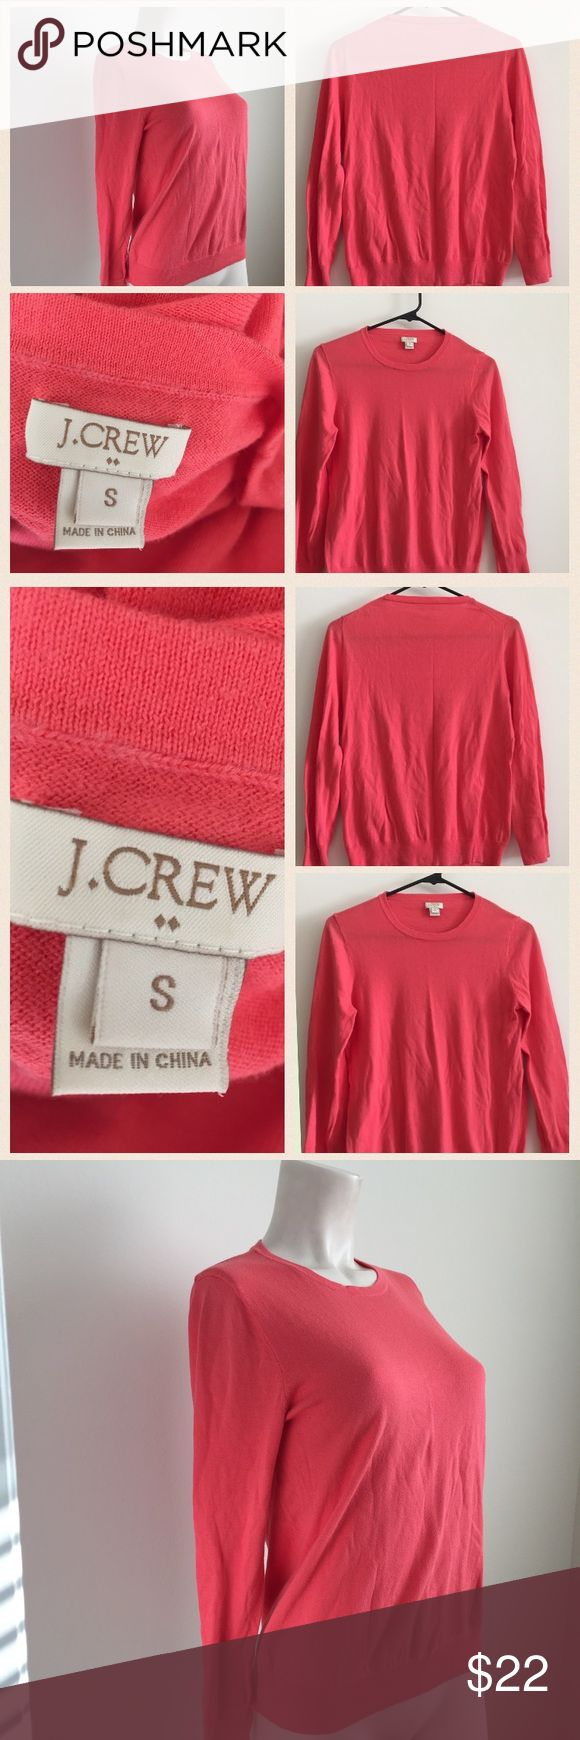 J. Crew coral colored sweater Gorgeous coral colored sweater by J. Crew. Pullover design. Add a pop of color to your outfit with this sweater! J. Crew Sweaters